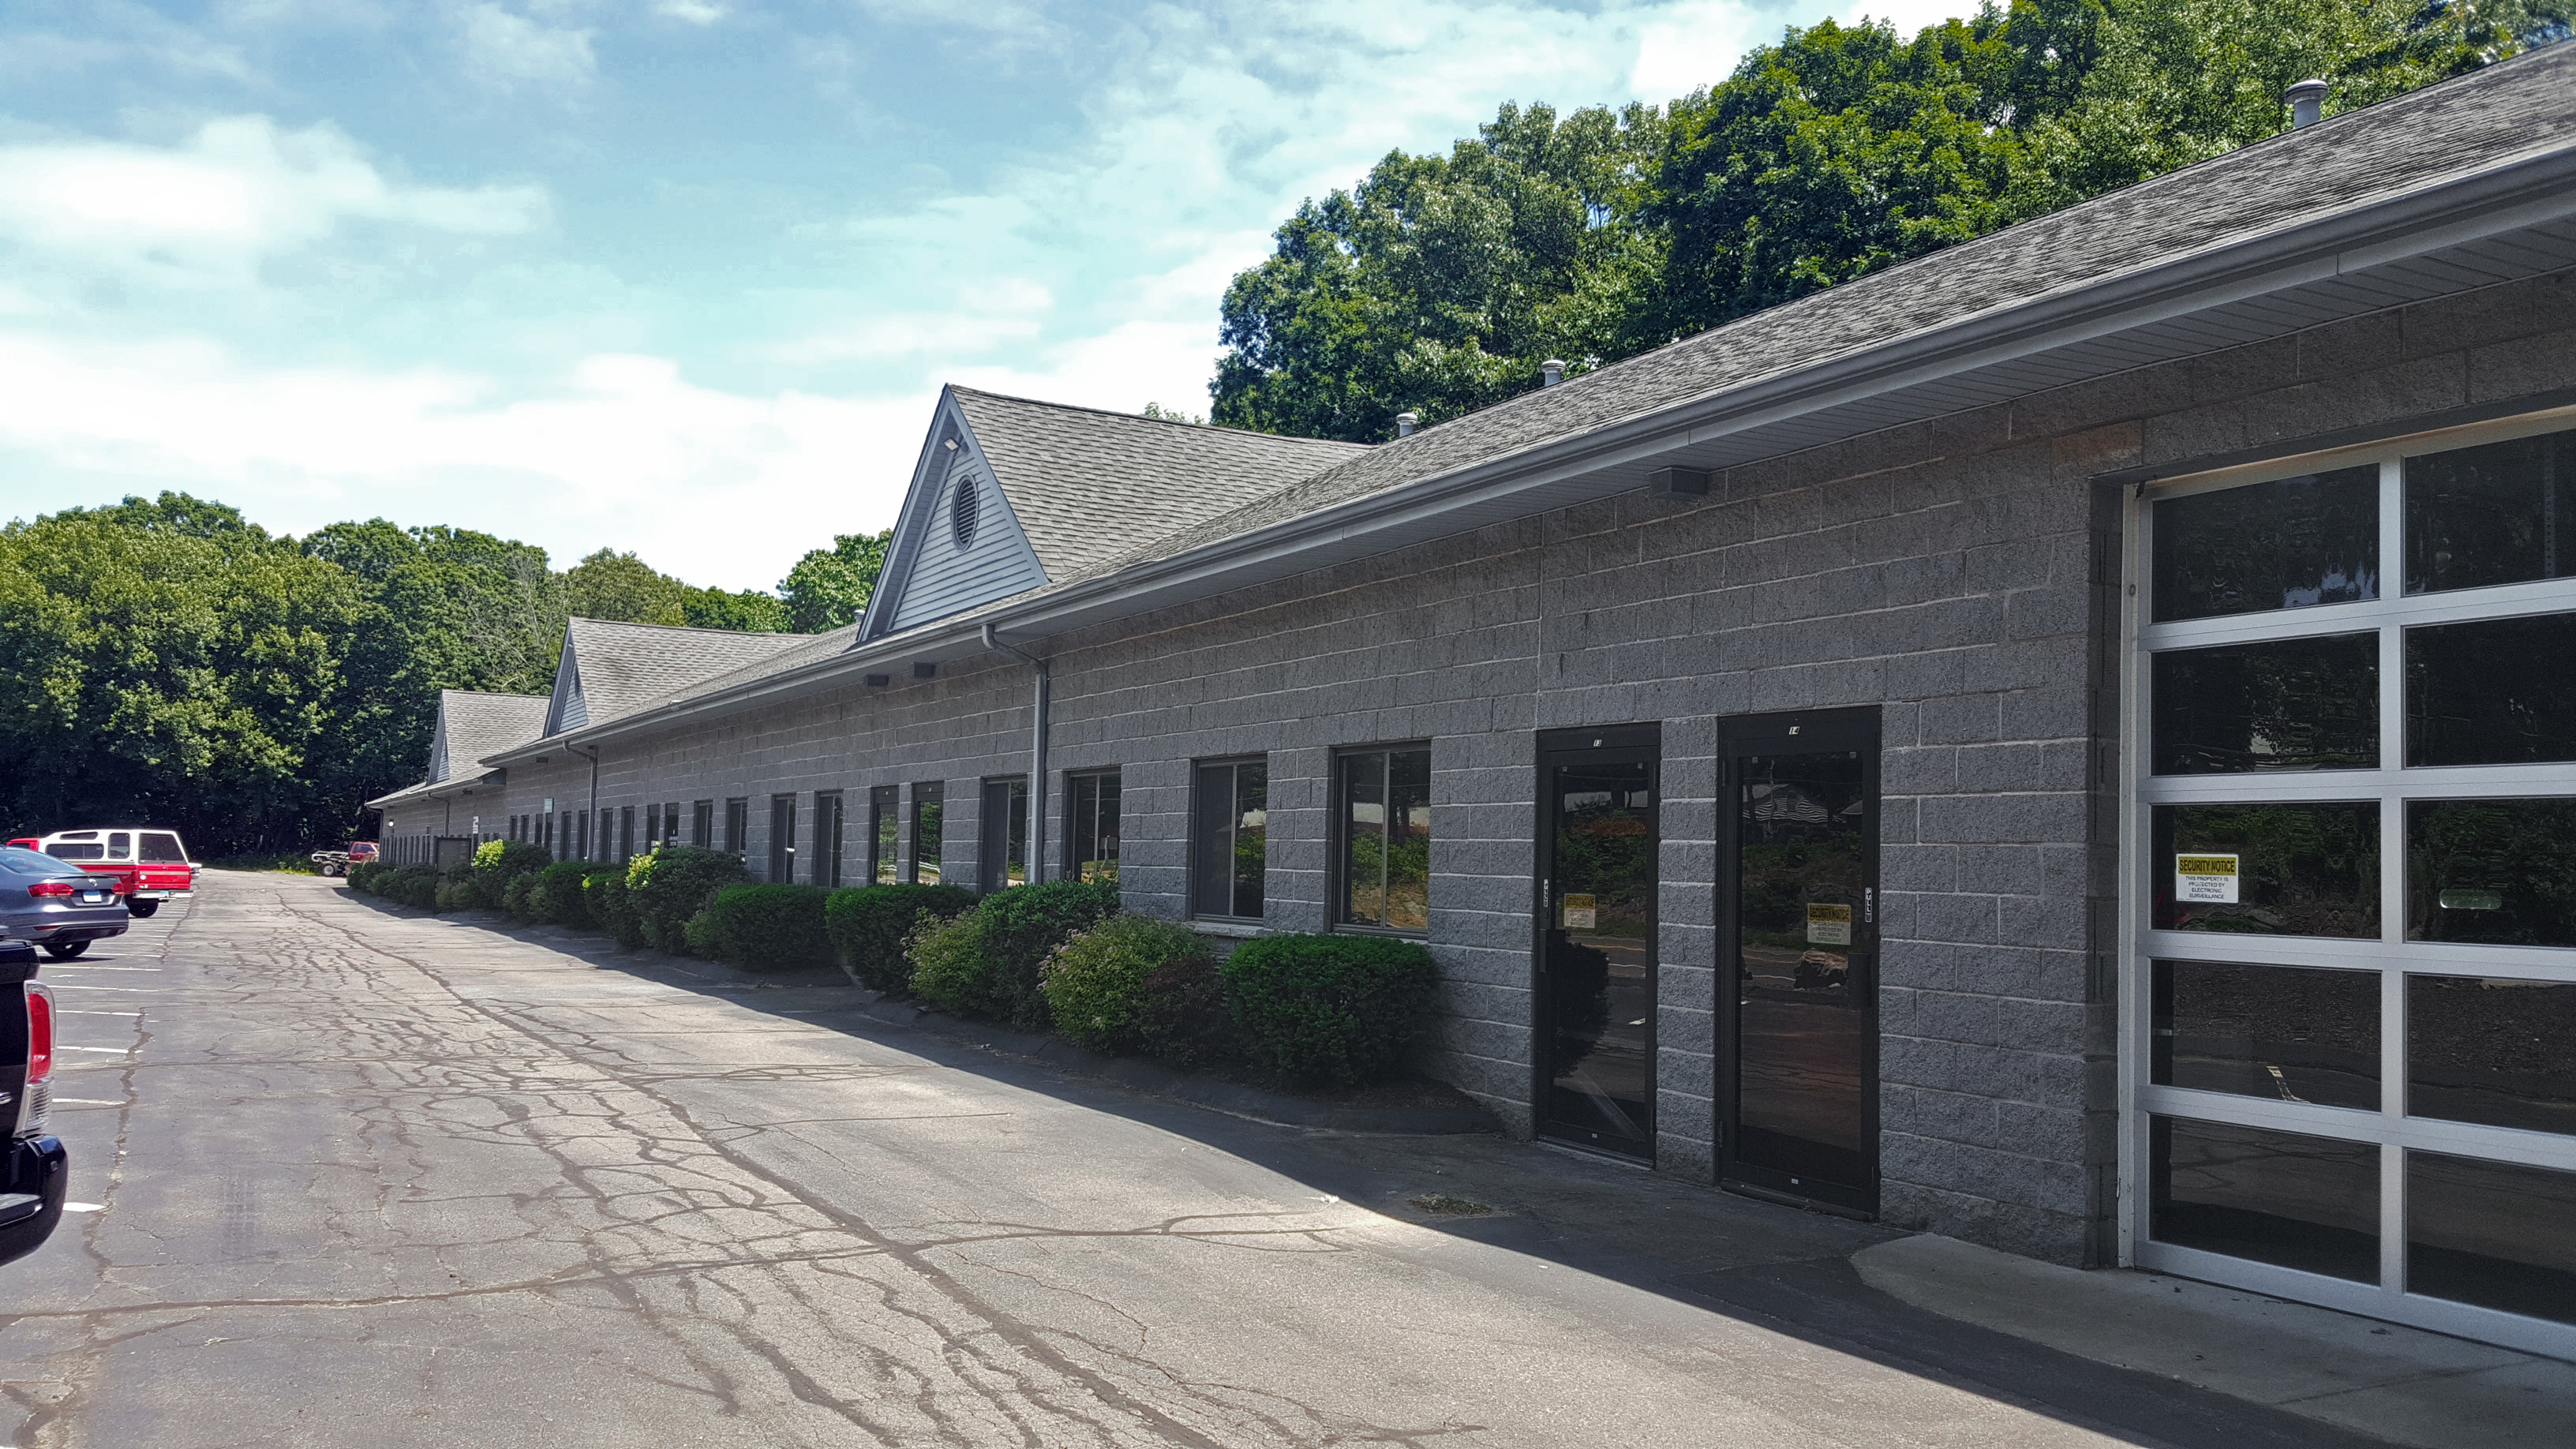 112 Nod Road, Clinton, Connecticut, ,Flex,For Sale,Nod Road,1038